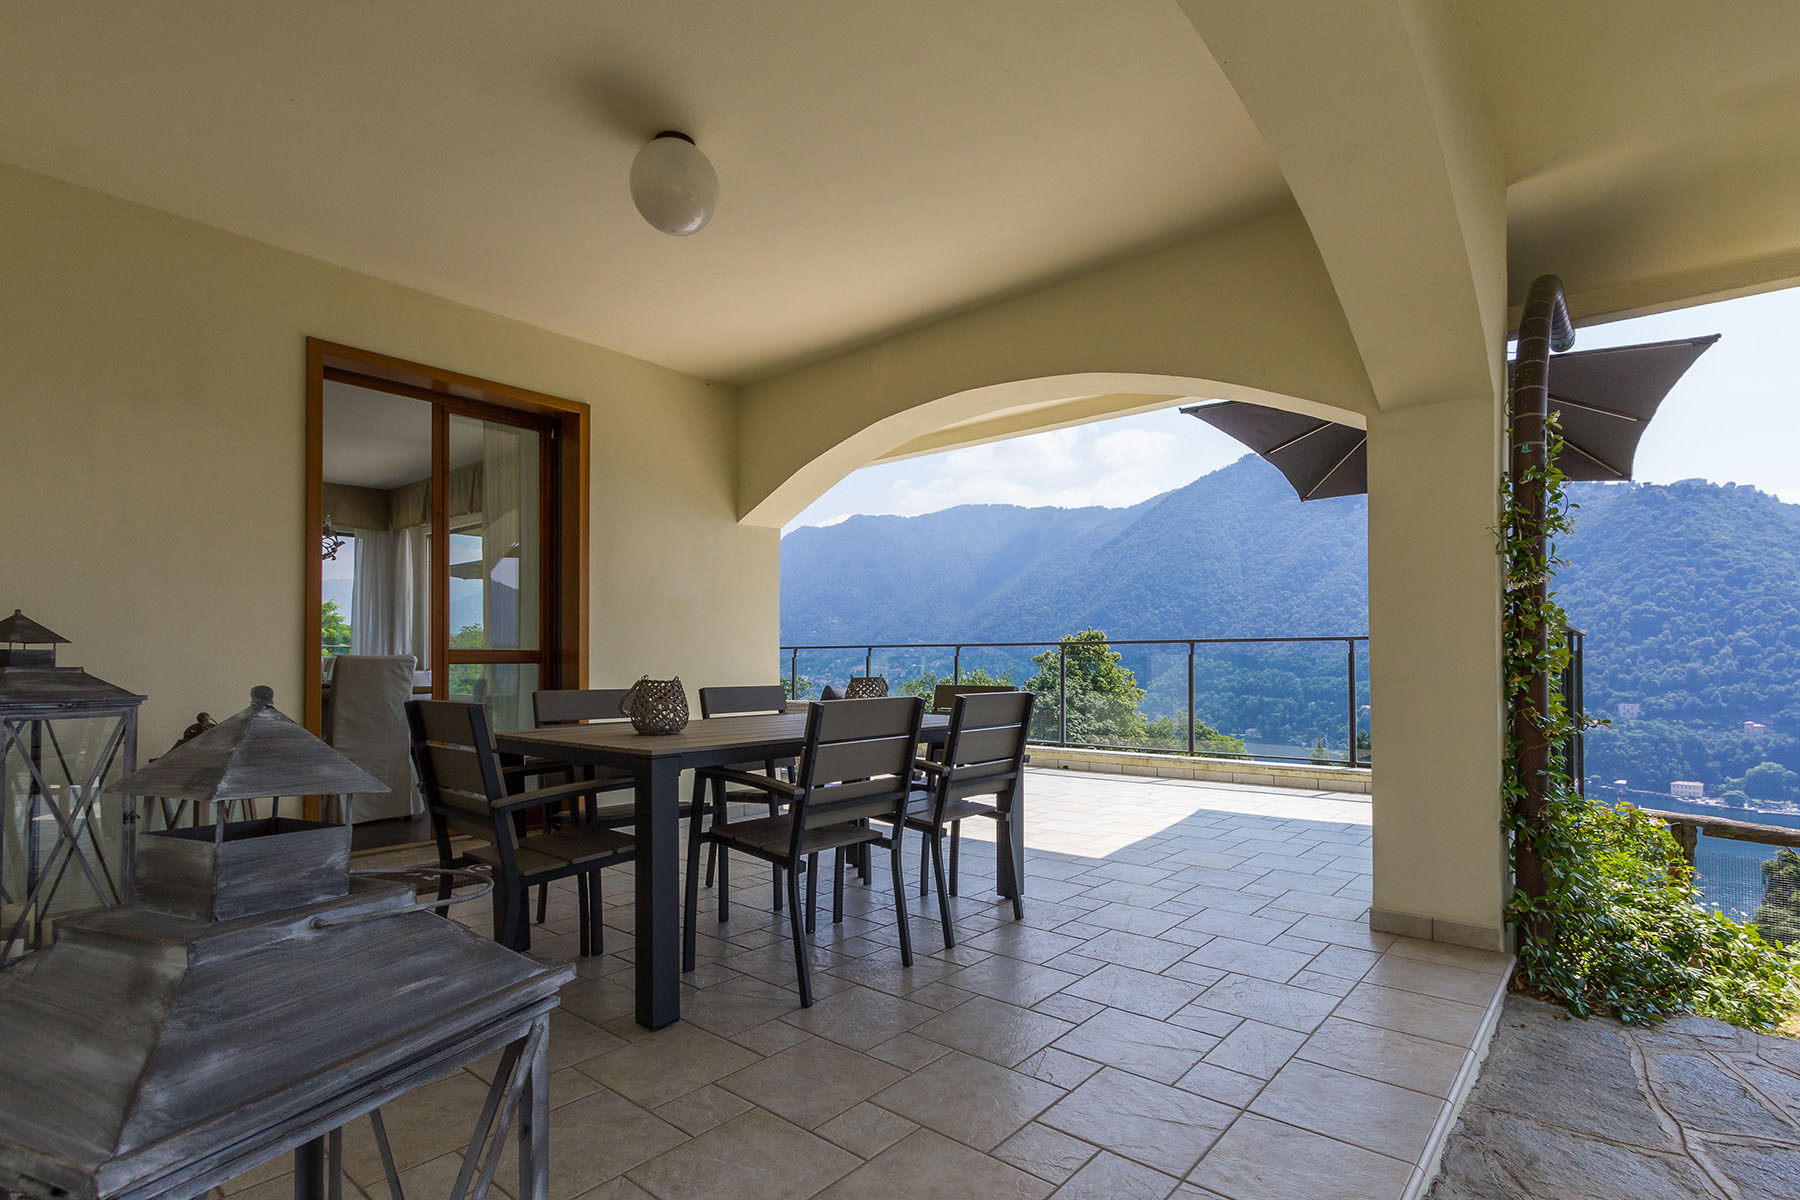 Additional photo for property listing at Authentic luxury with incomparable panoramic view via Panoramica San Pietro Como, Como 22100 Italia